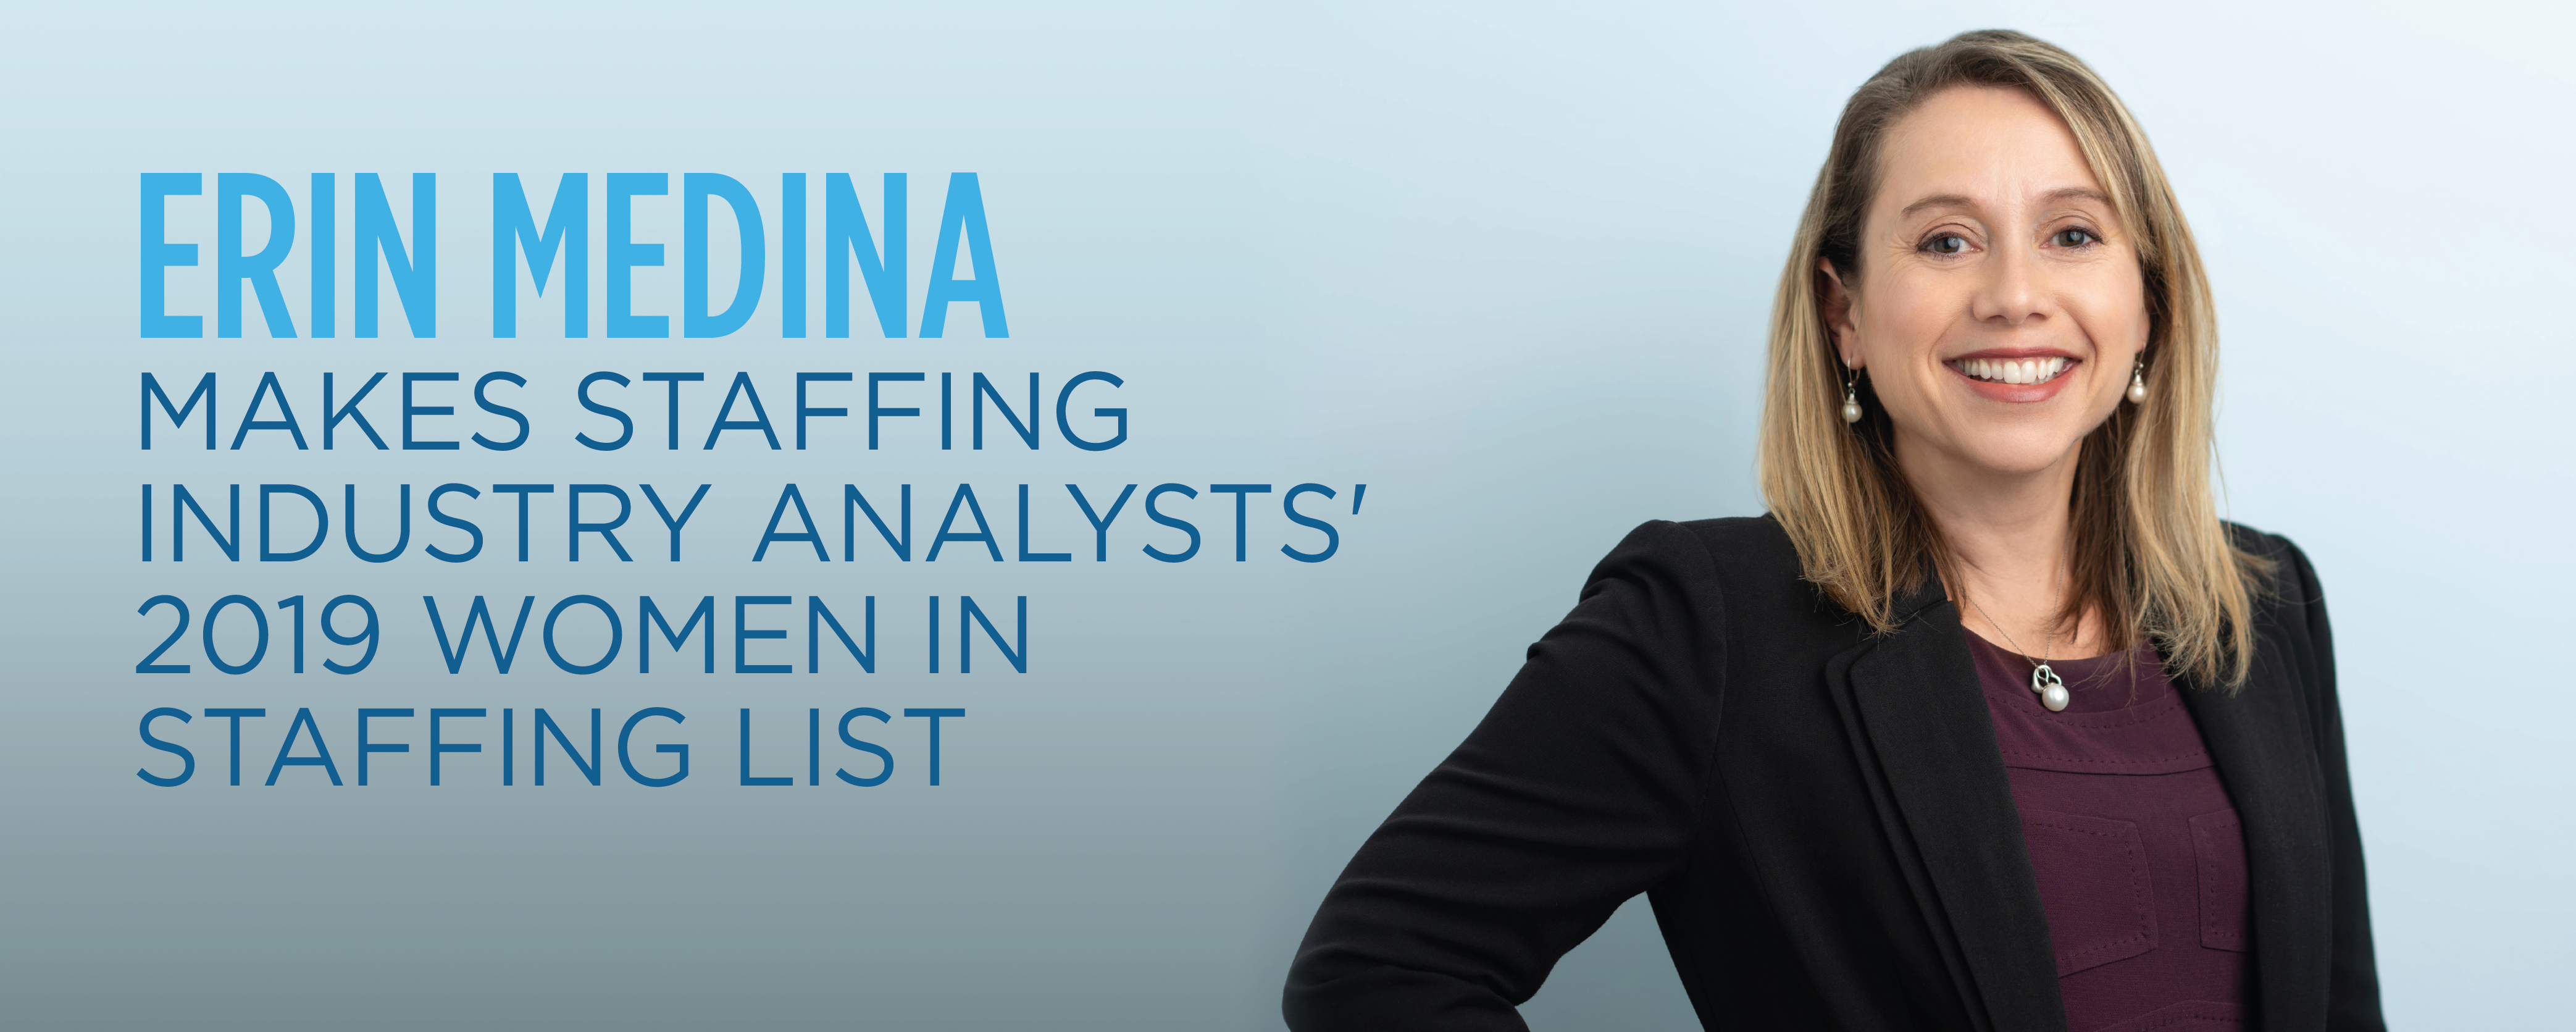 "Erin Medina makes staffing industry analysts' ""2019 women in staffing"" list"